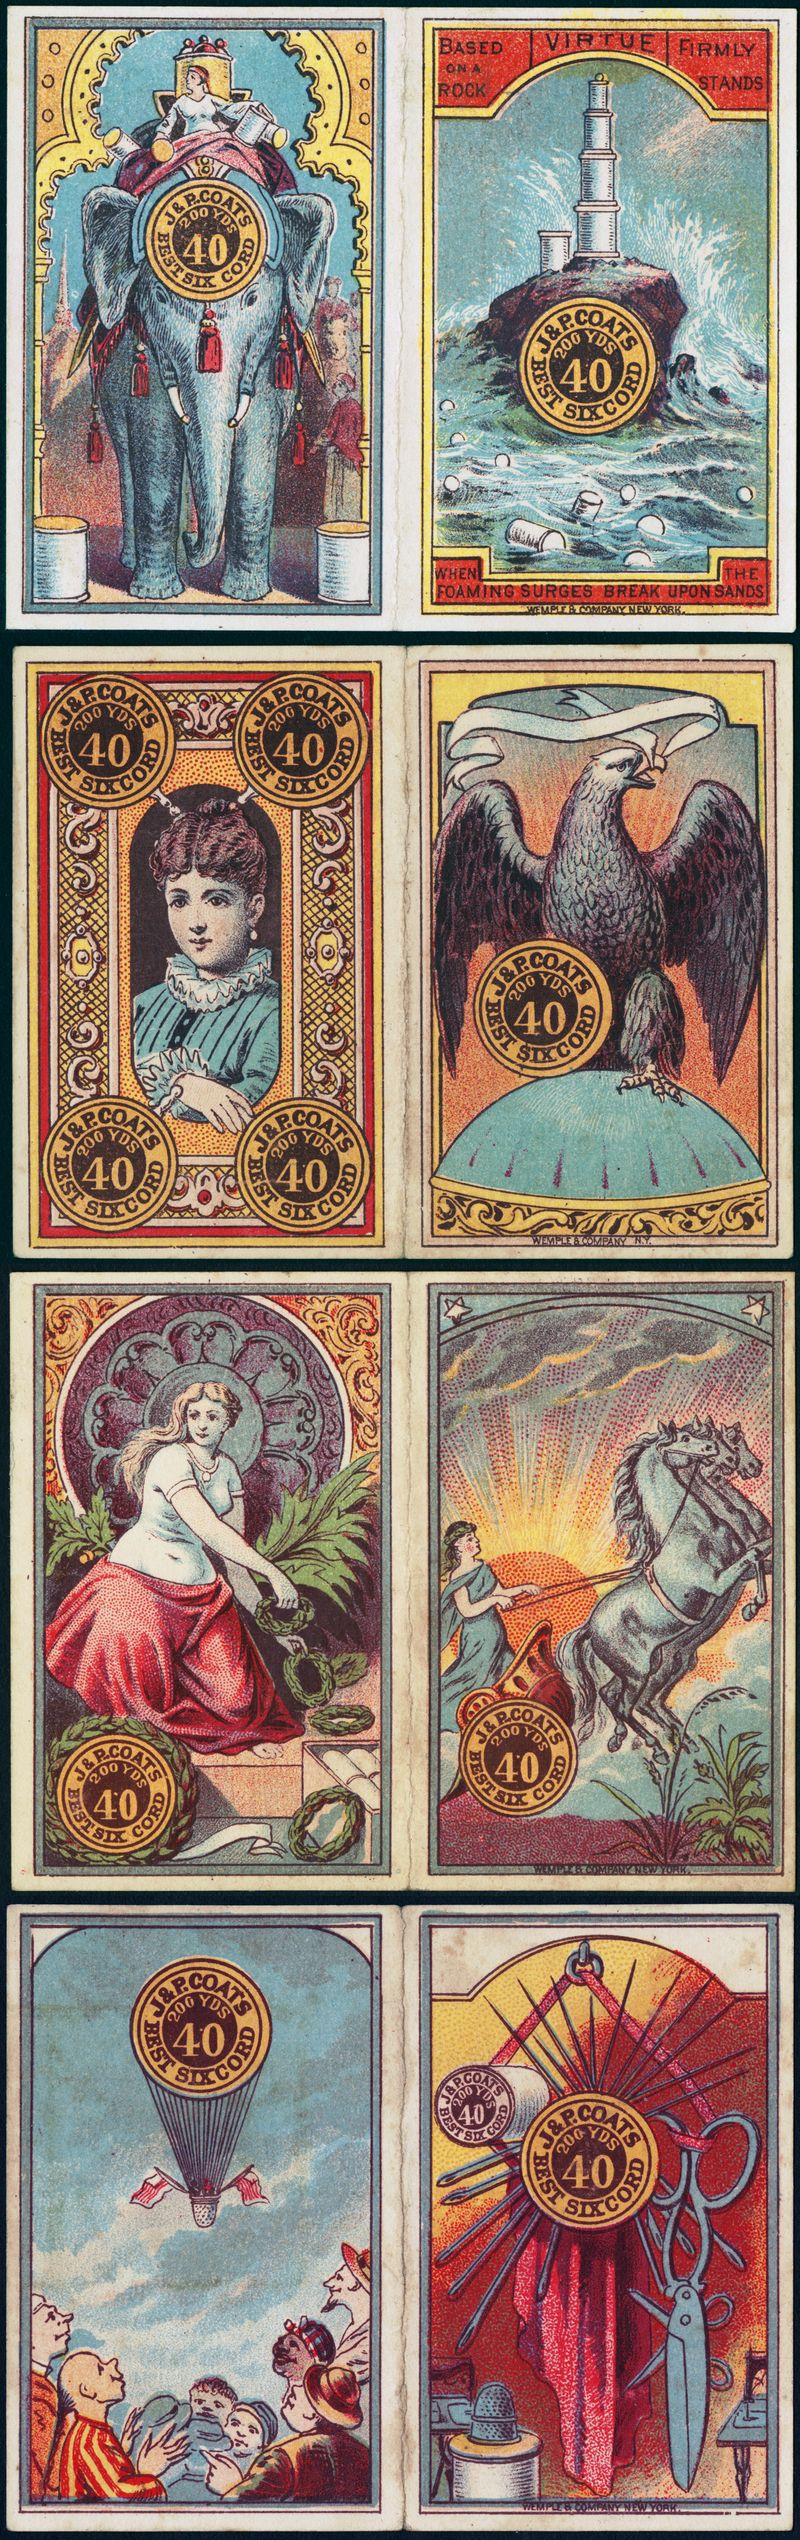 In the late 1800s, the J & P. Coats thread company released Tarot-like trade cards